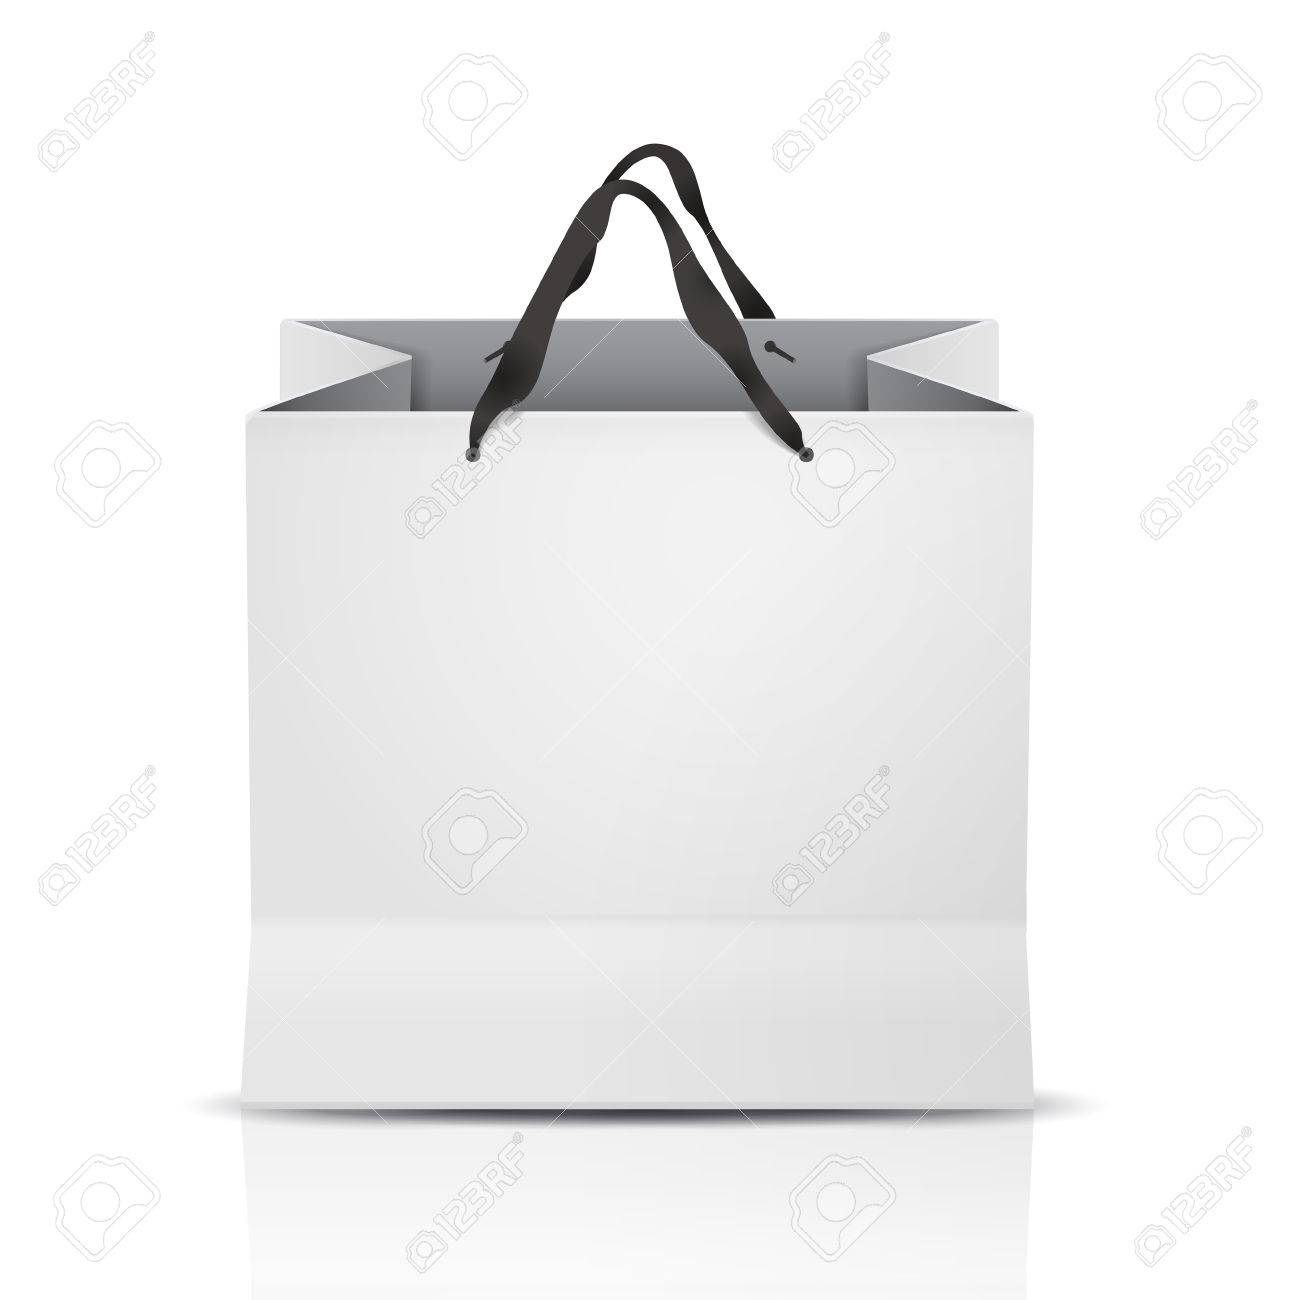 shopping bag template White Shopping Bag Template Isolated On White Royalty Free Cliparts ...